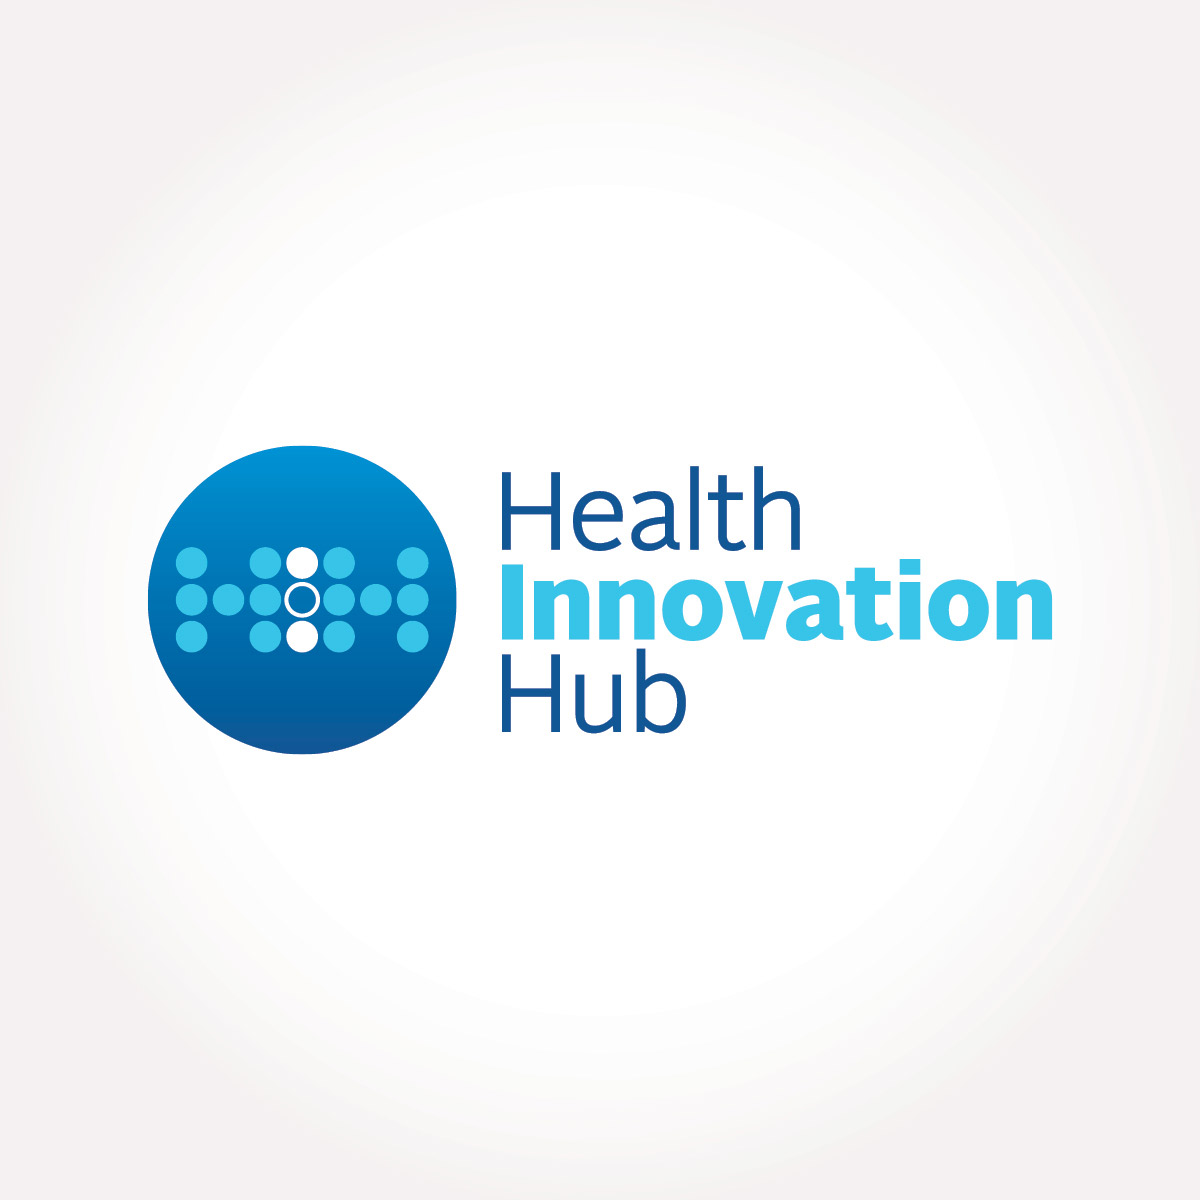 HealthInnovationHub_01.jpg